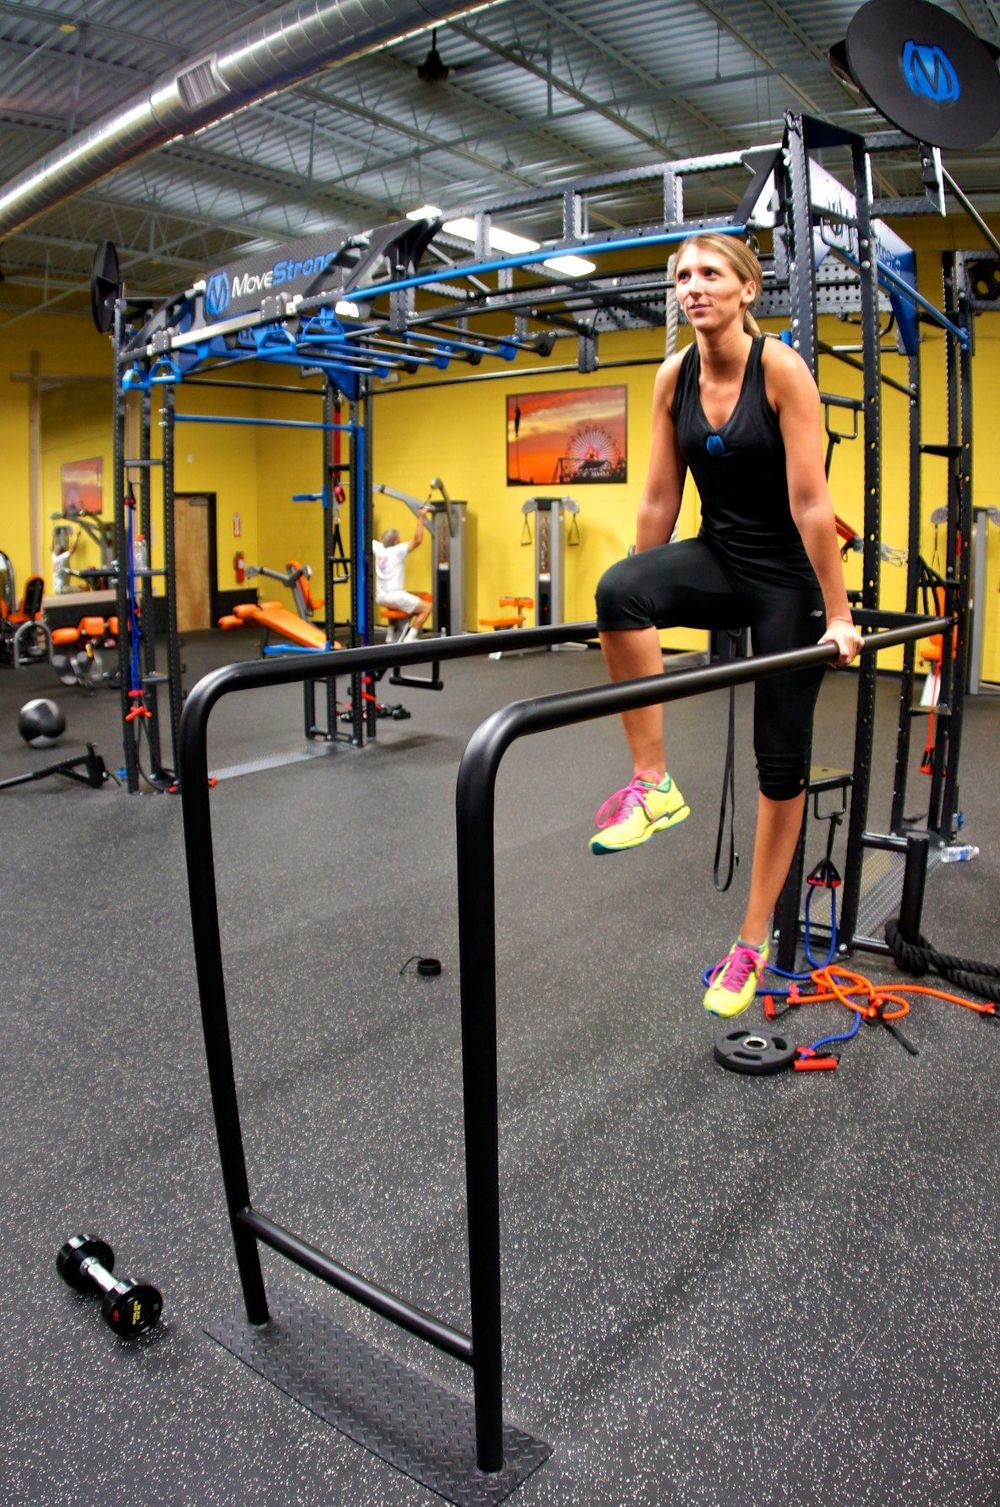 Parallel bars fitness equipment